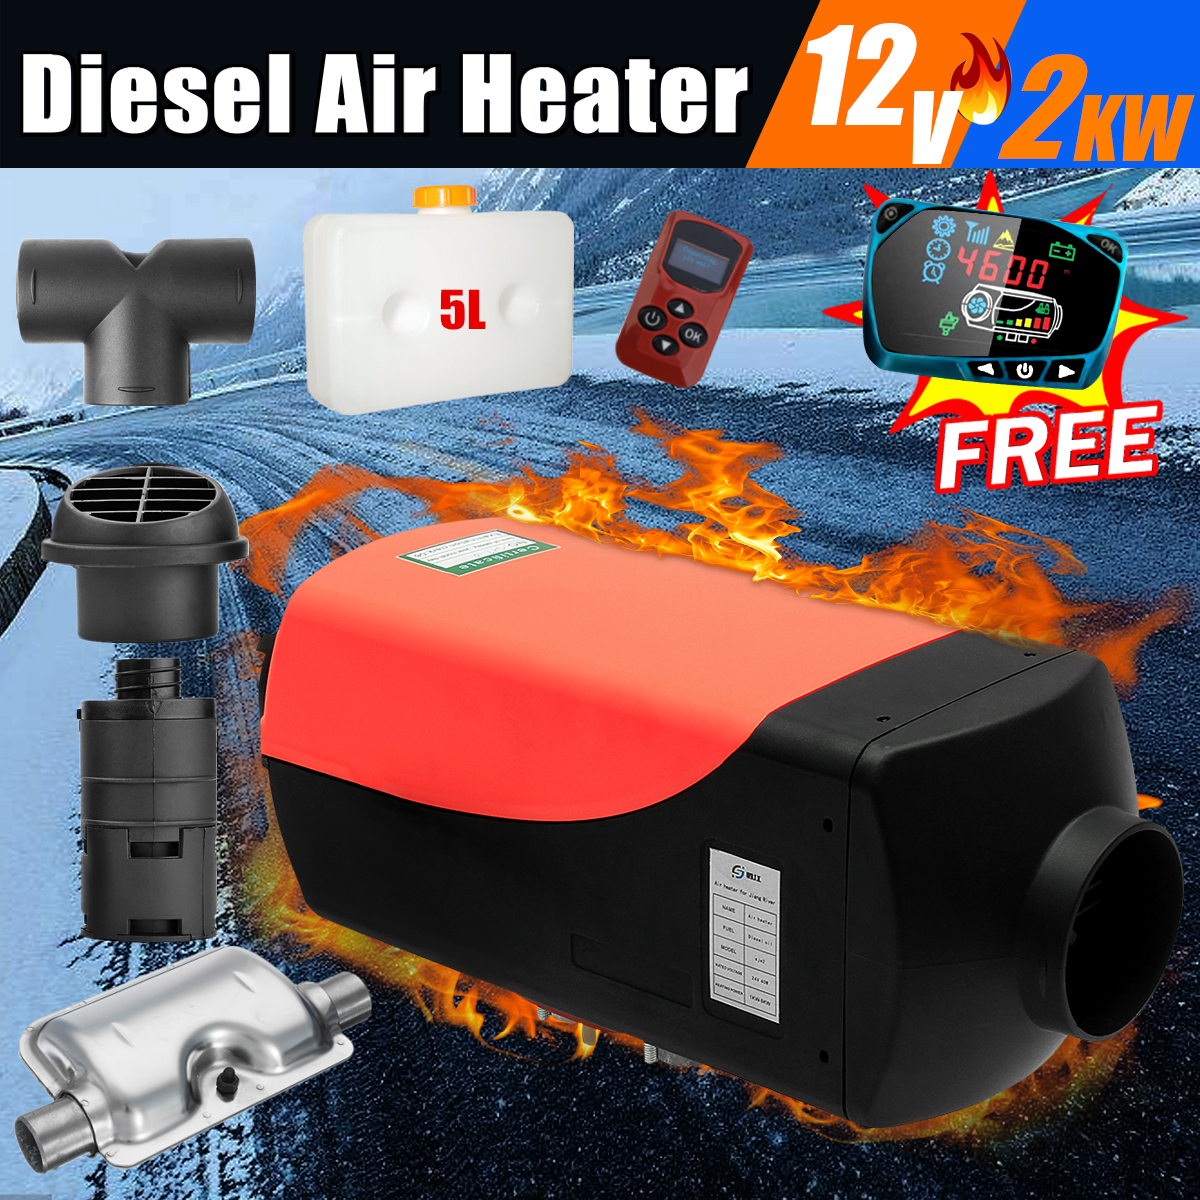 Car Heater 2KW 12V Air Diesels Heater Parking Heater With Remote Control LCD Monitor For RV, Motorhome Trailer, Trucks, BoatsCar Heater 2KW 12V Air Diesels Heater Parking Heater With Remote Control LCD Monitor For RV, Motorhome Trailer, Trucks, Boats